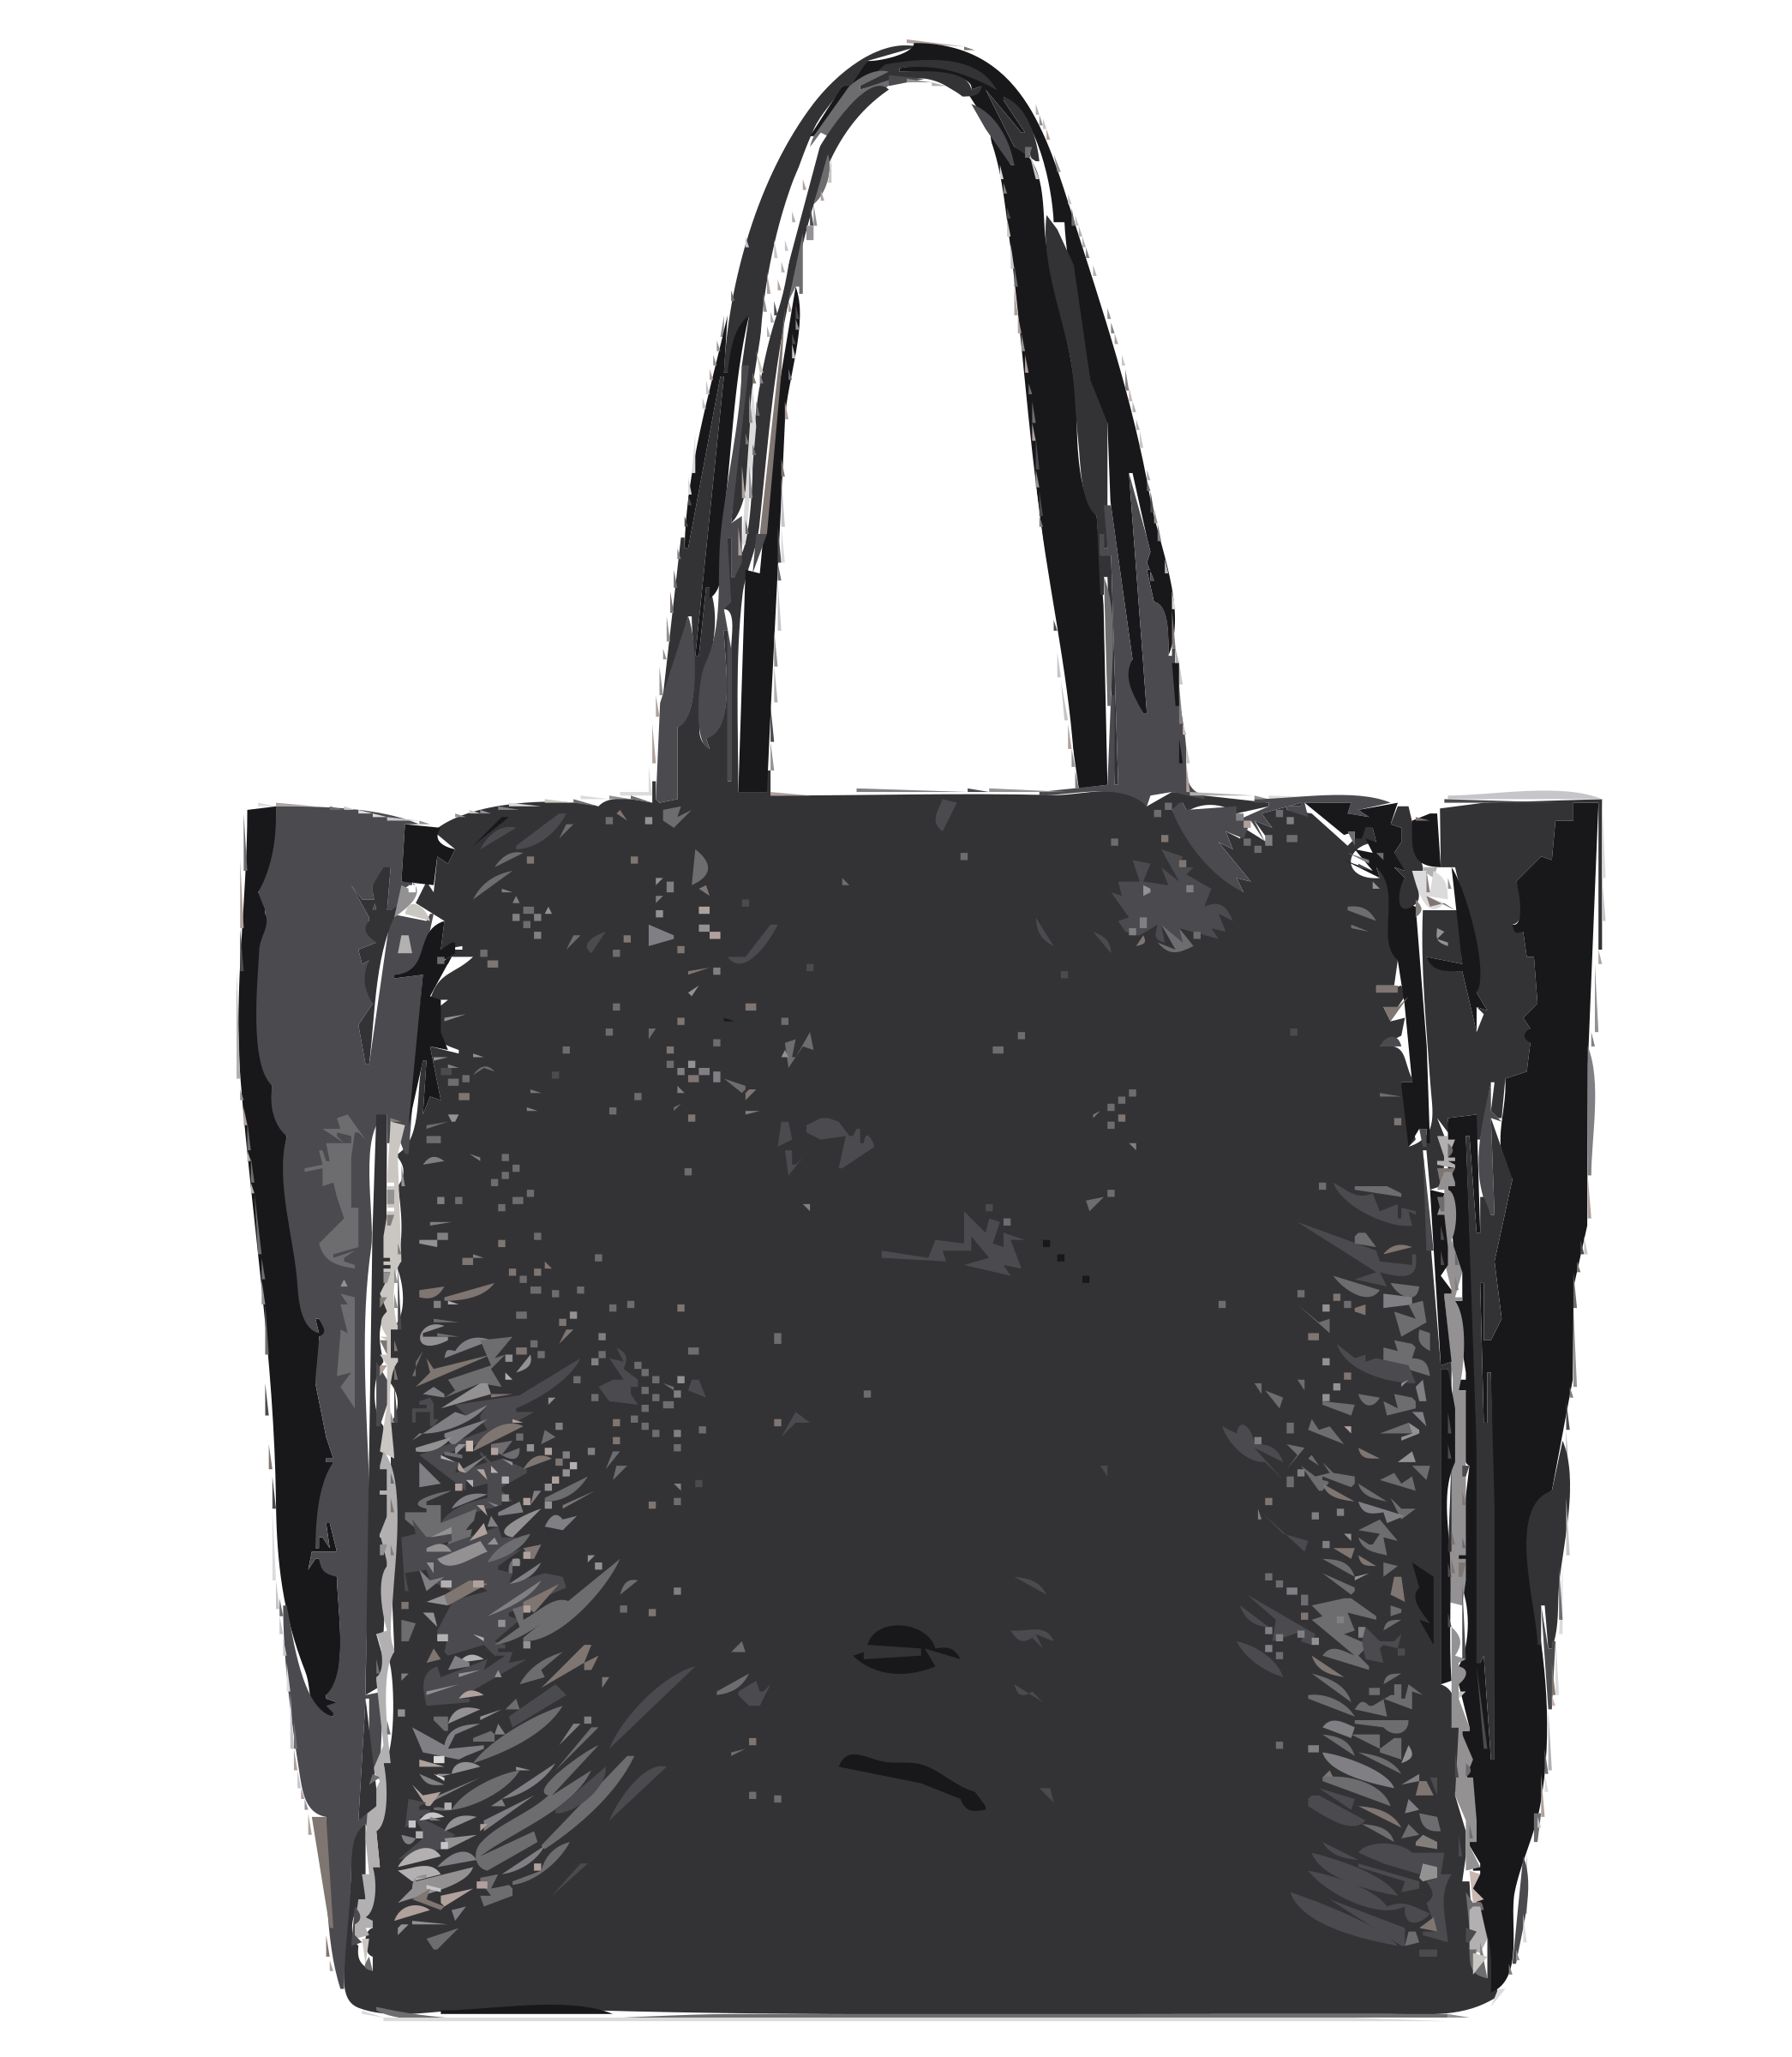 Bag clipart tote bag. Black no logo big